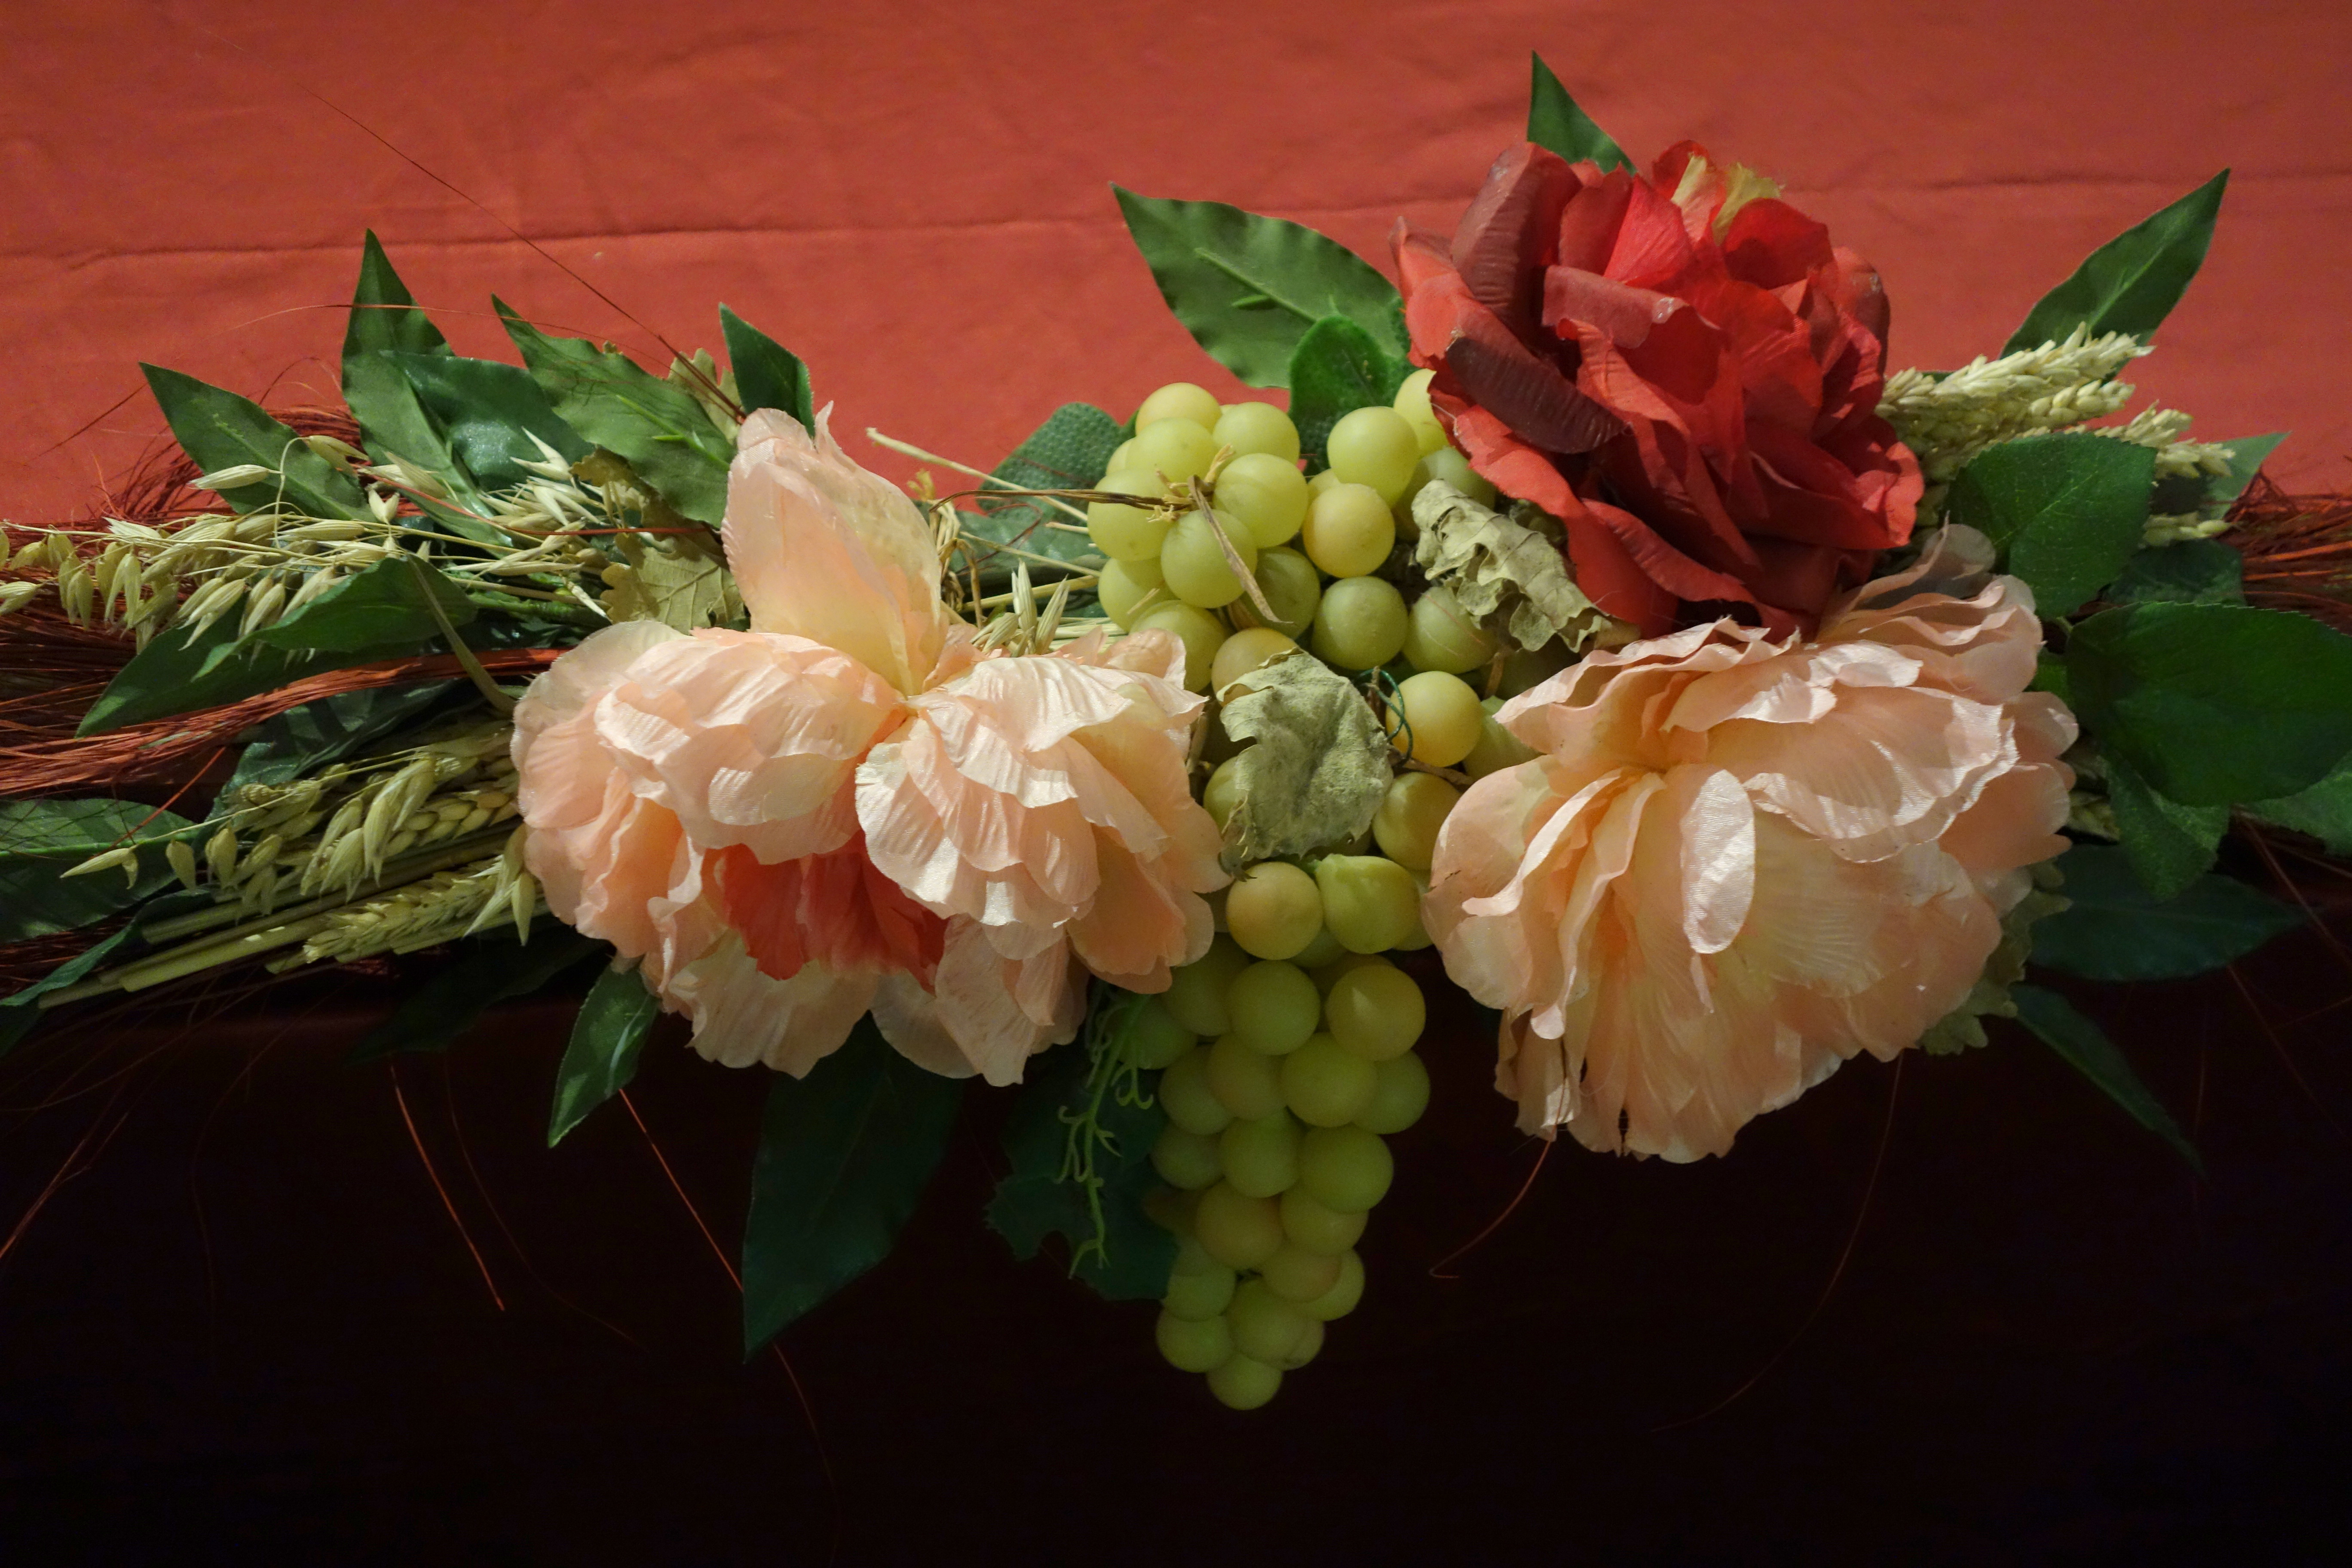 fileartificial flowers and fruit museo diocesano genoa